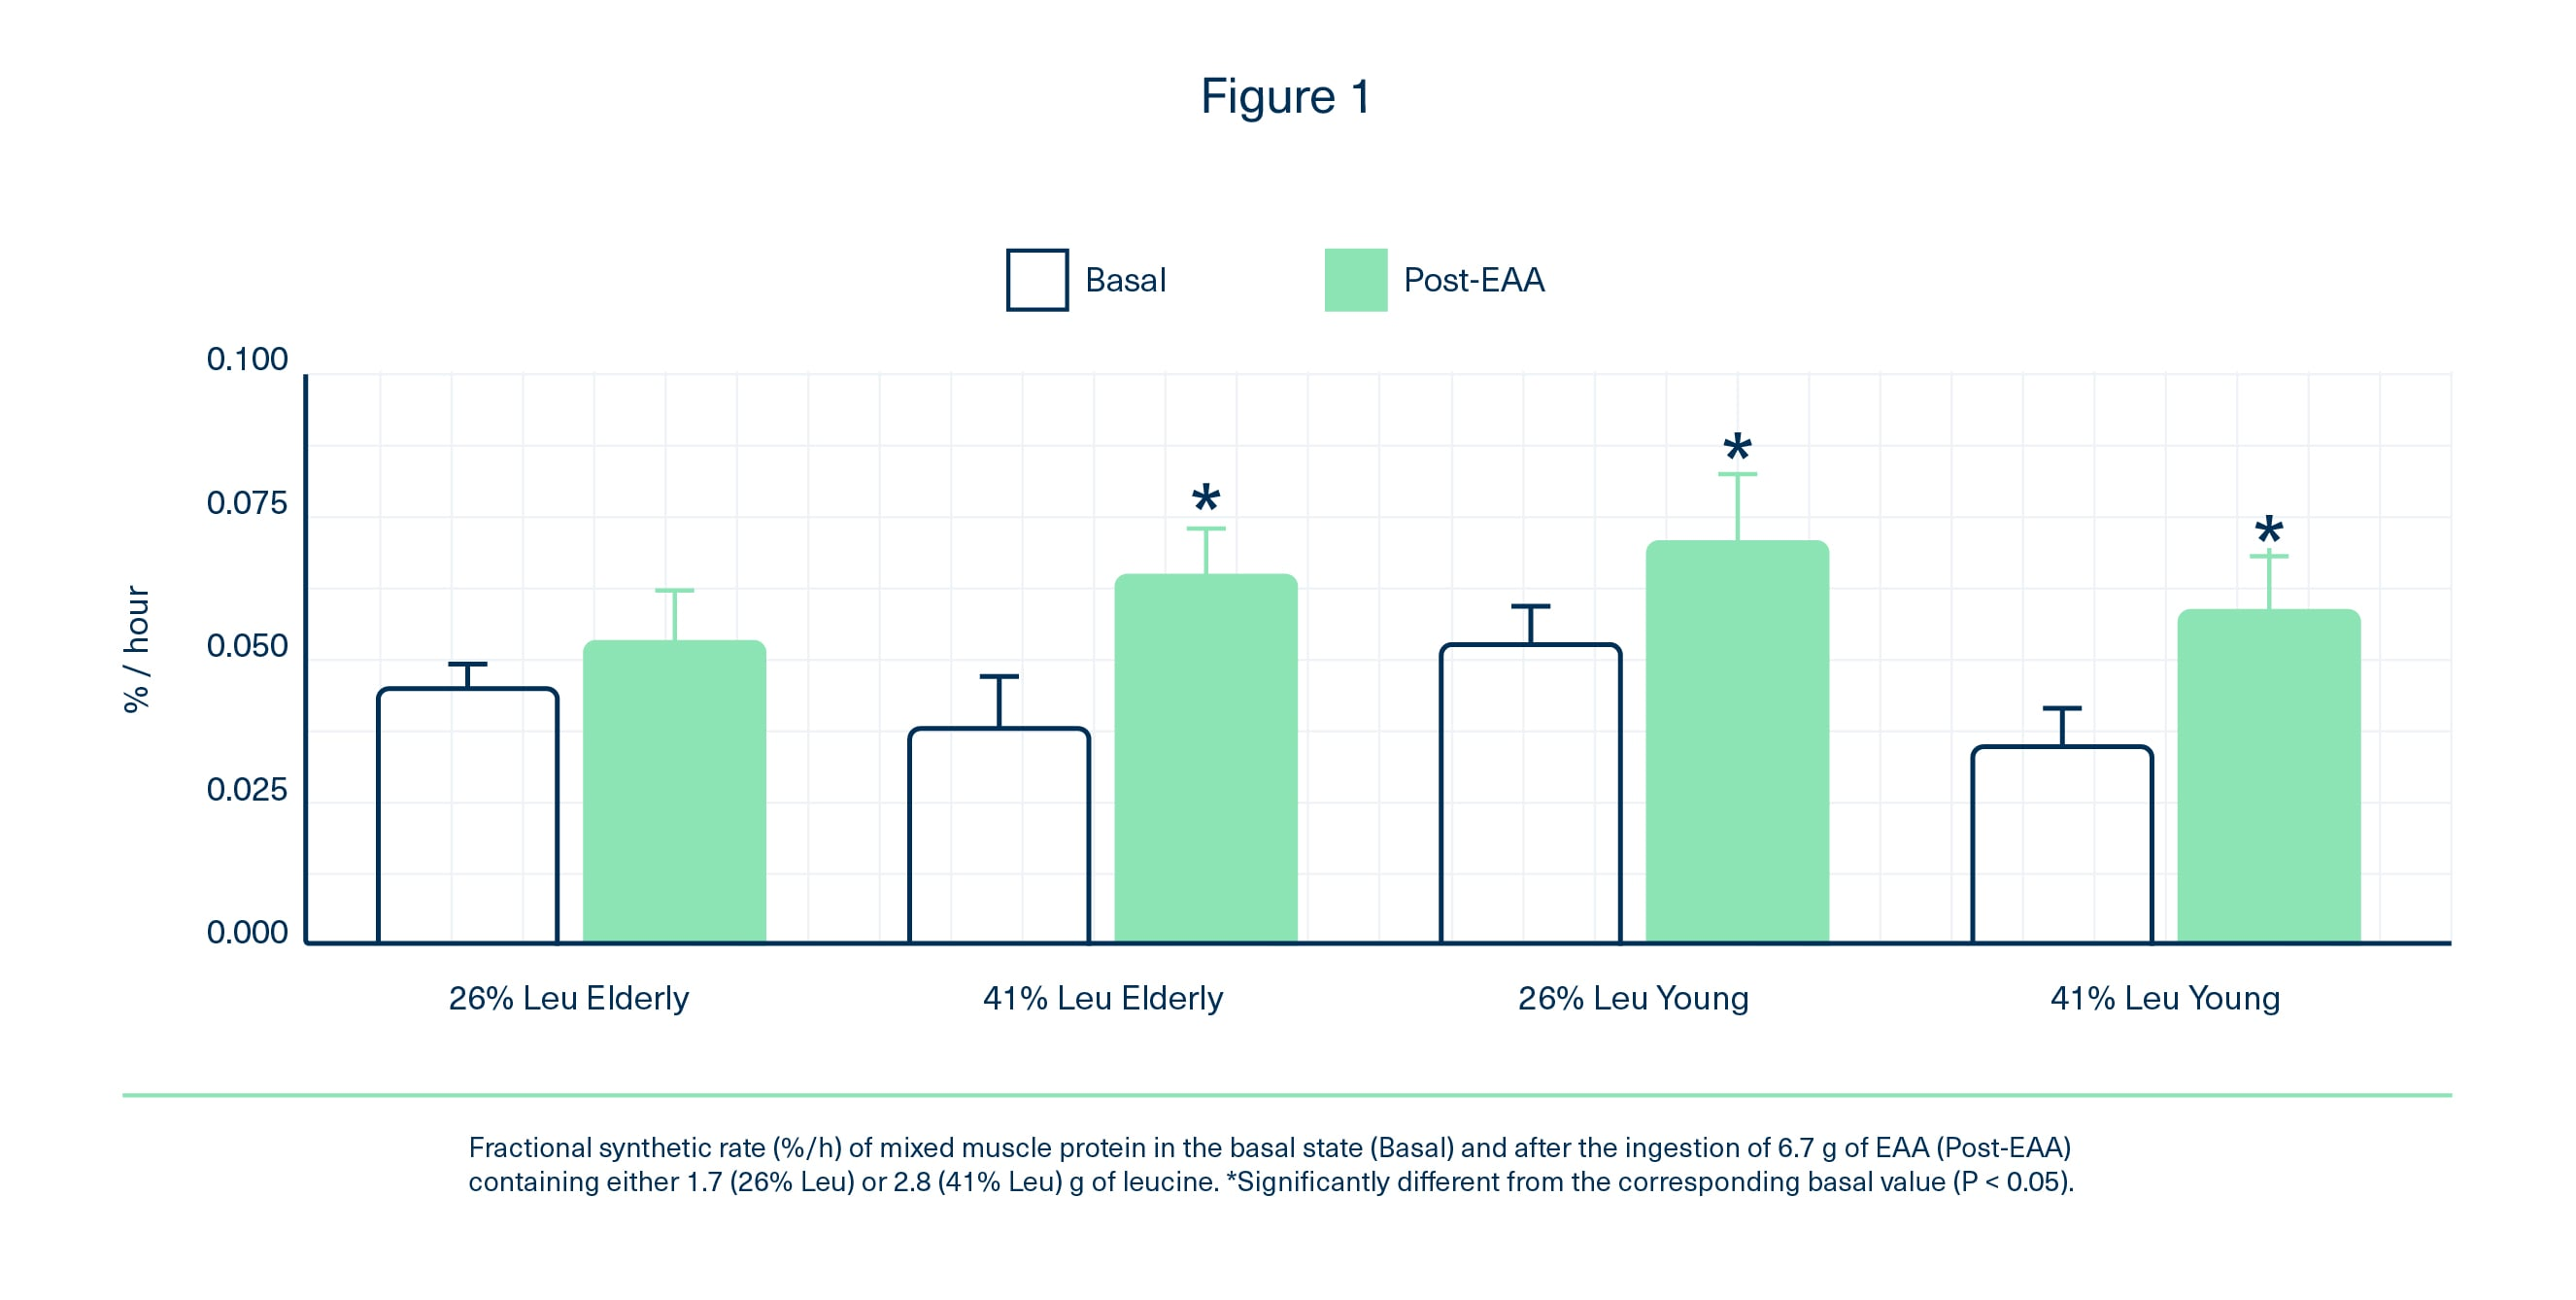 FSR after ingestion of 6.7g EAAs. High-leucine showed a clinically significant benefits in the elderly.